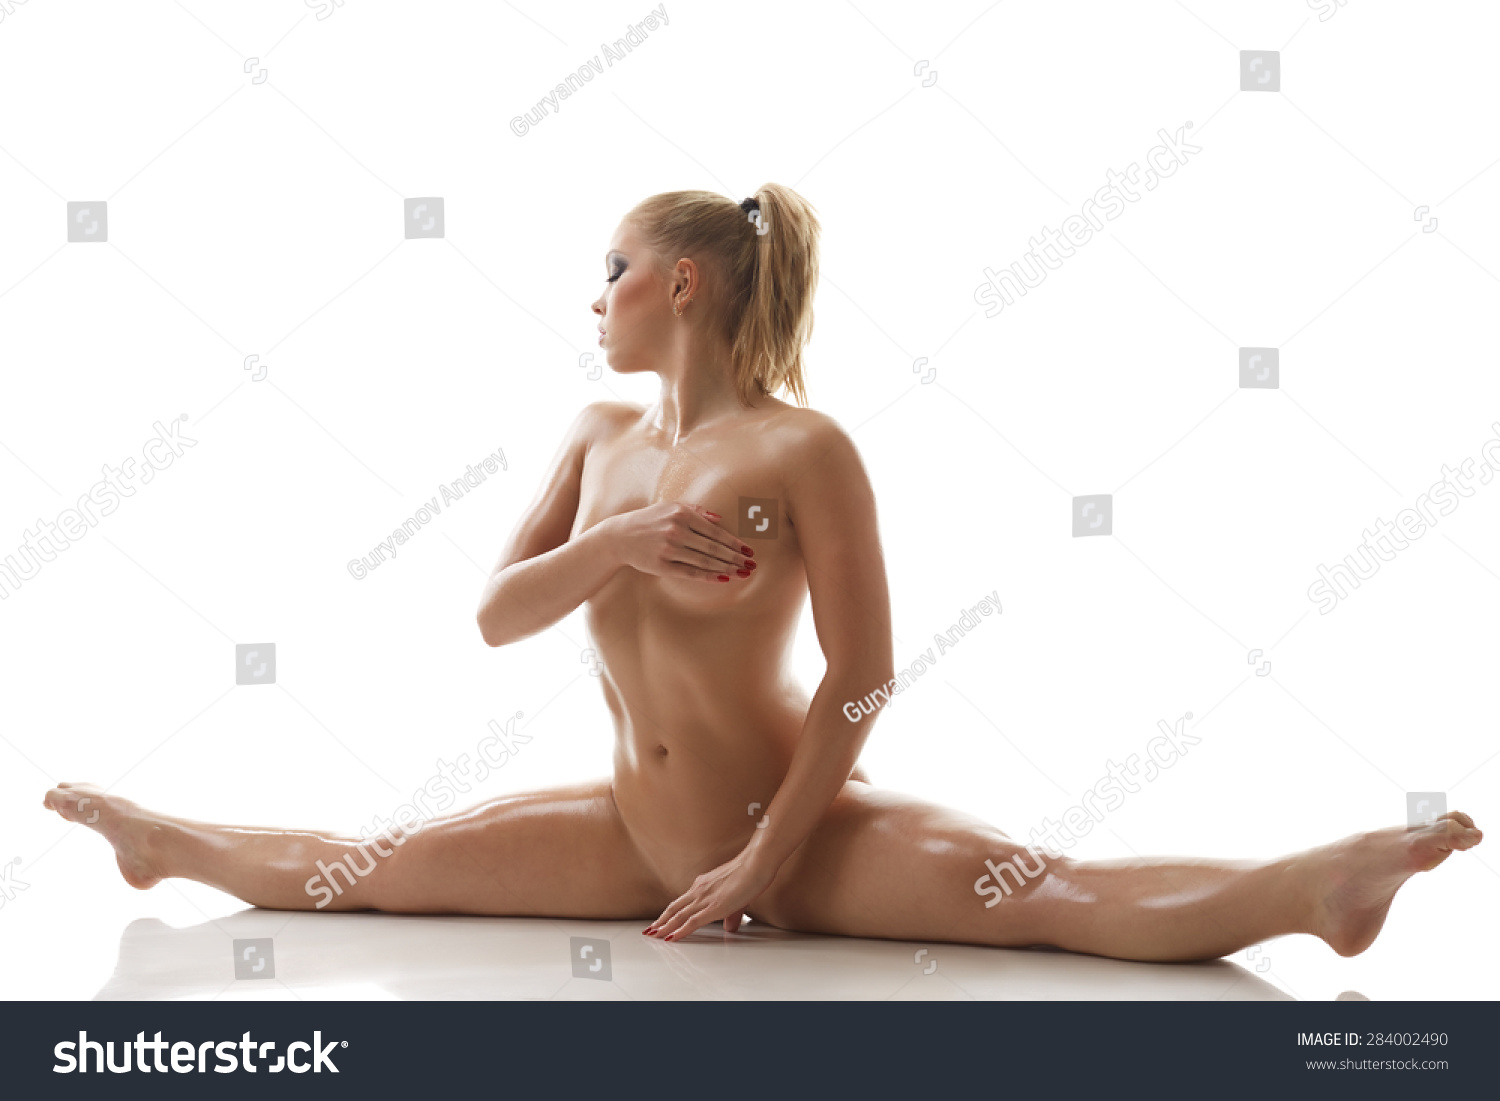 Sexy Naked Women Doing Splits Images 48